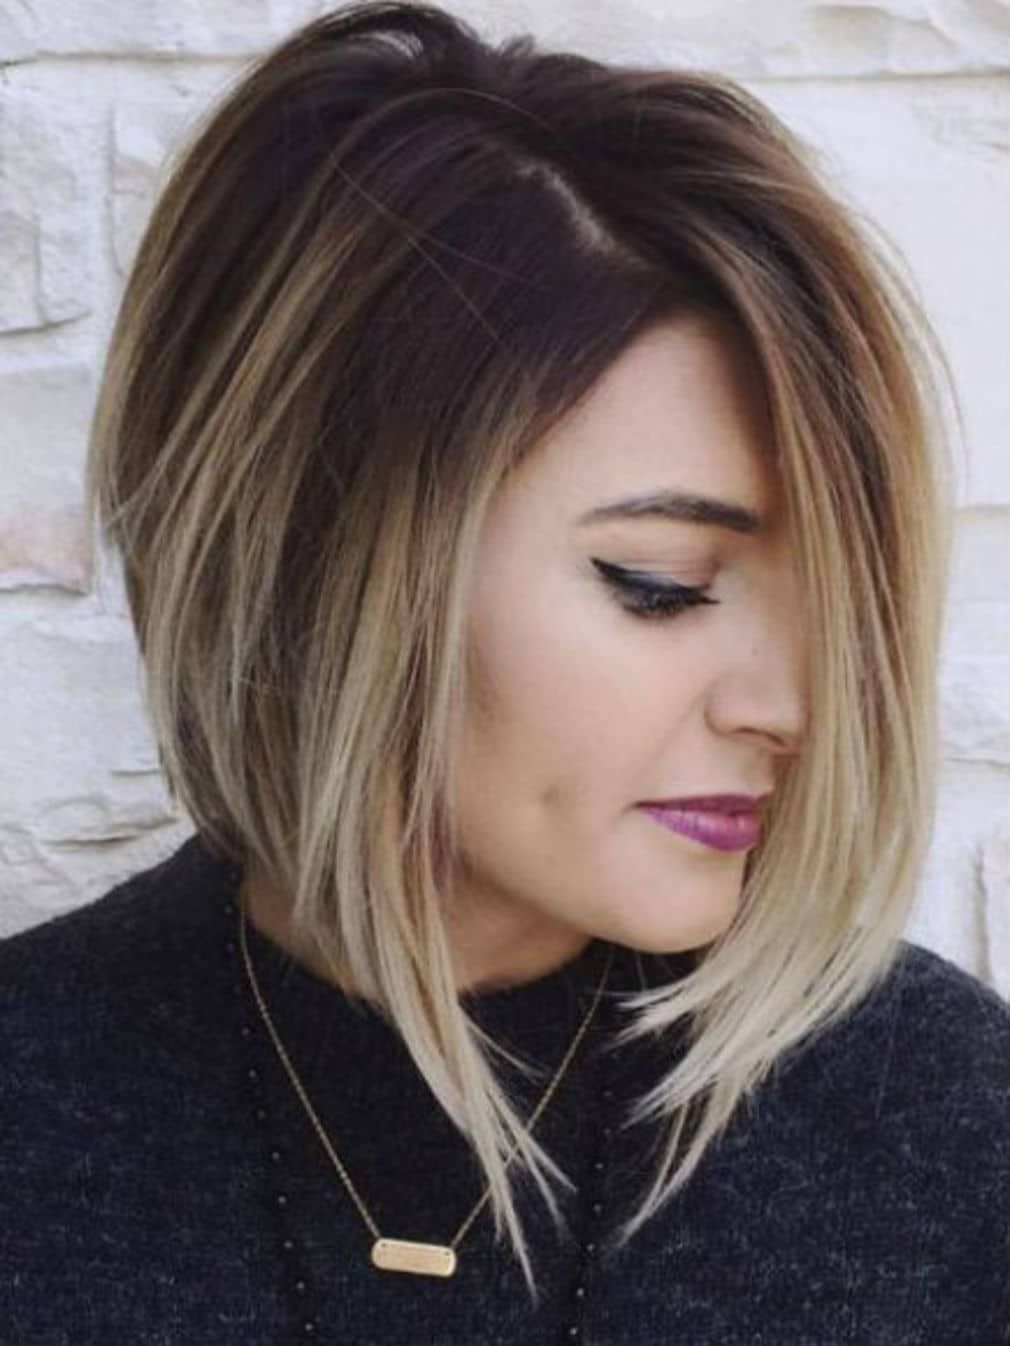 Coupe degradee sur cheveux longs